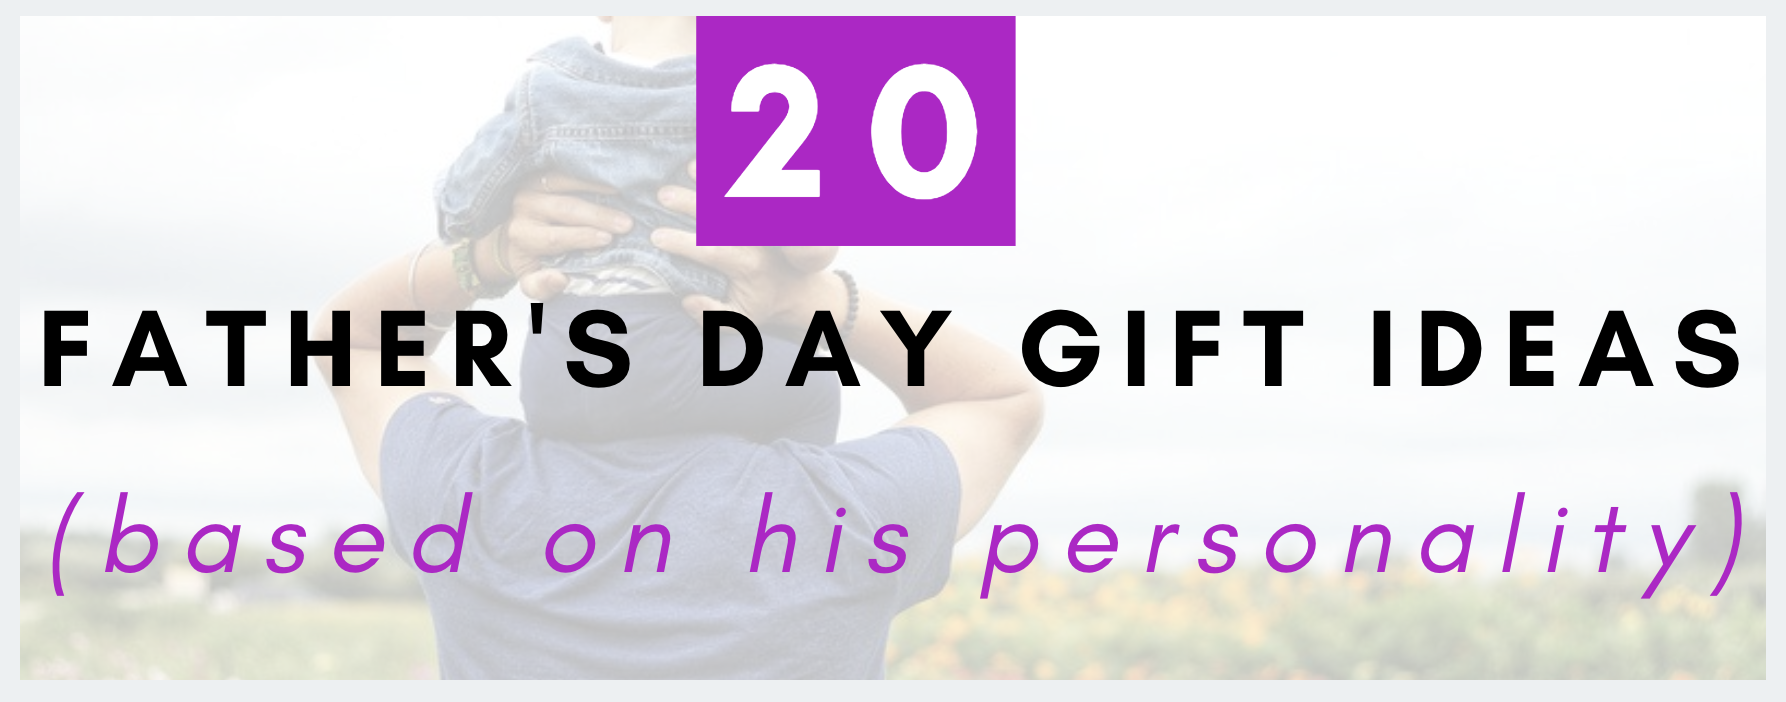 "Picture of Dad and Son with text ""20 Father's Day Gift Ideas Based on His Personality)"